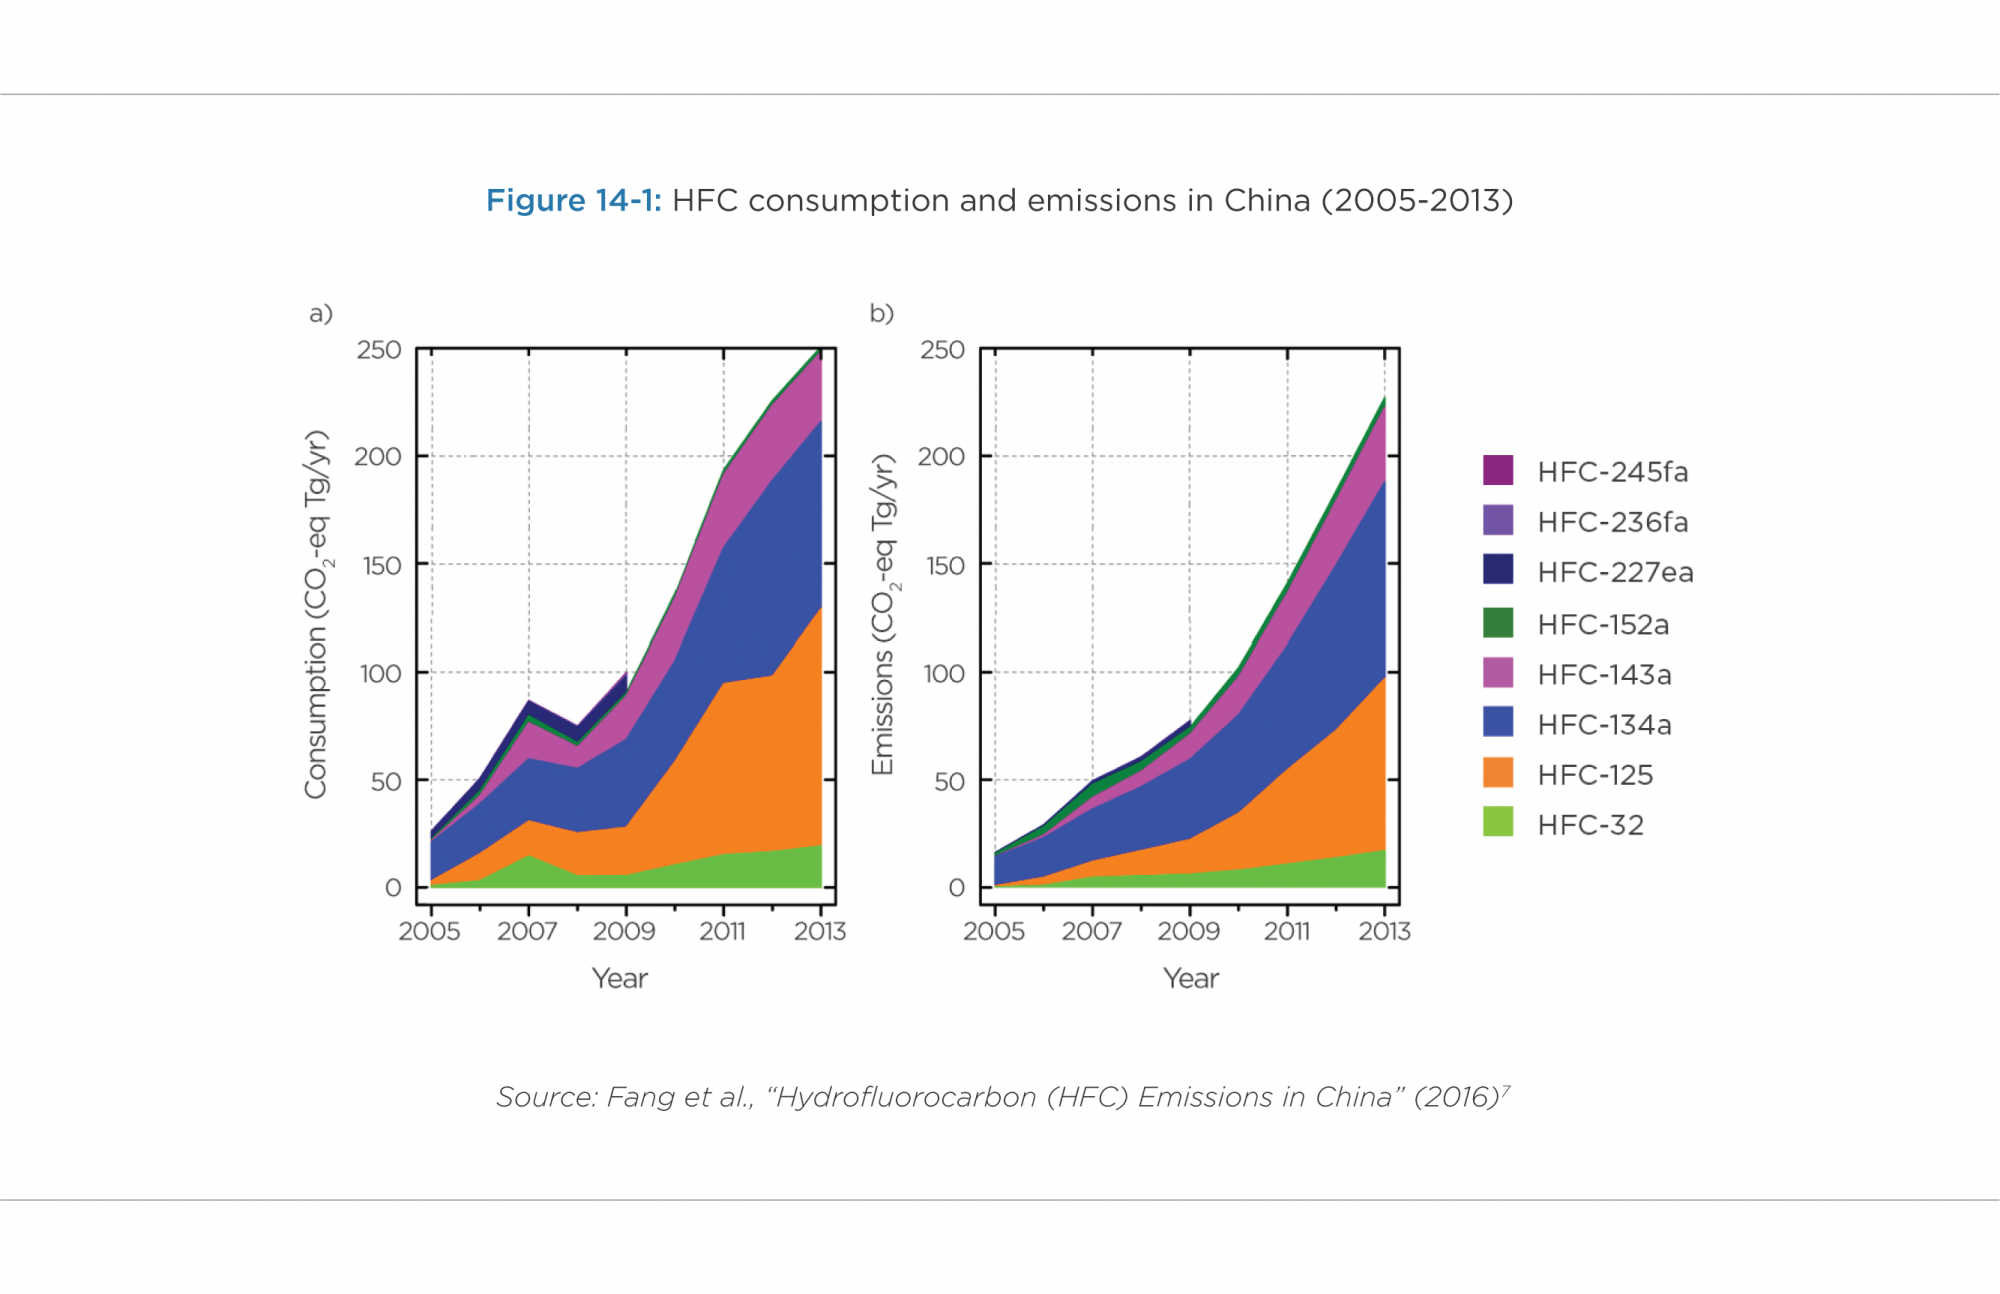 Figure 14-1: HFC consumption and emissions in China (2005-2013)